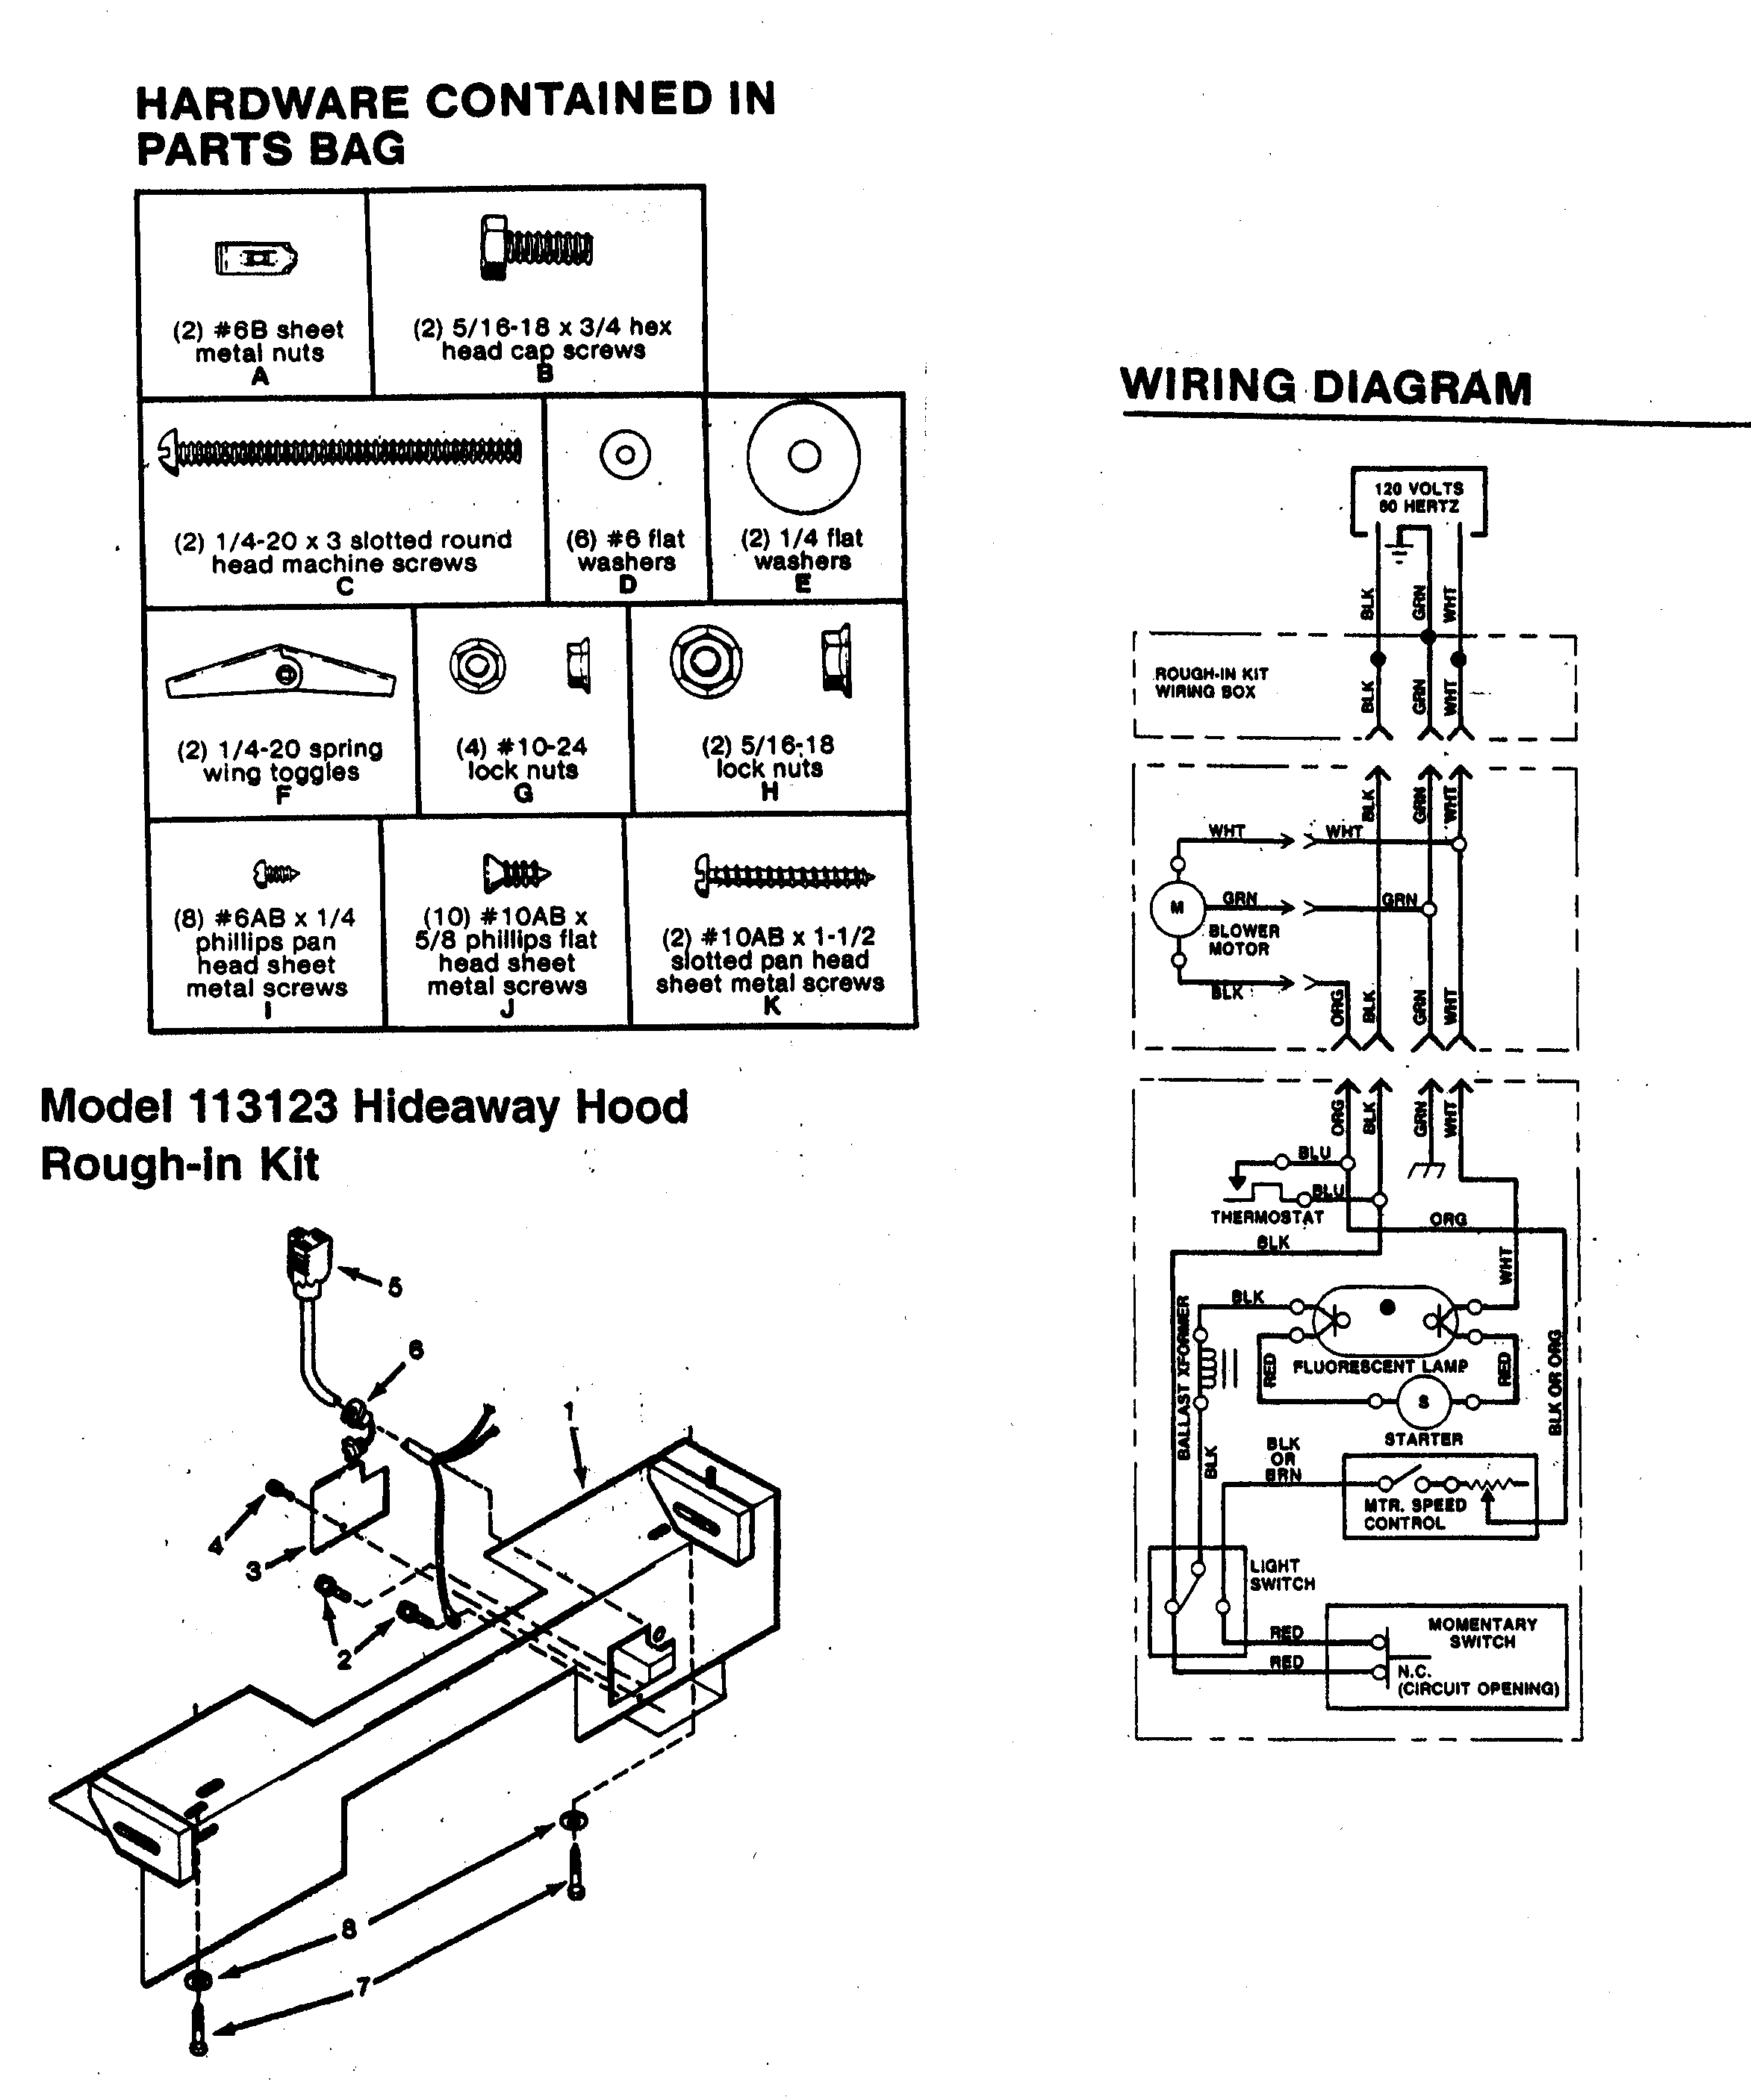 Enchanting Polaris 325 Magnum Wiring-diagram Ideas - Best Image ...